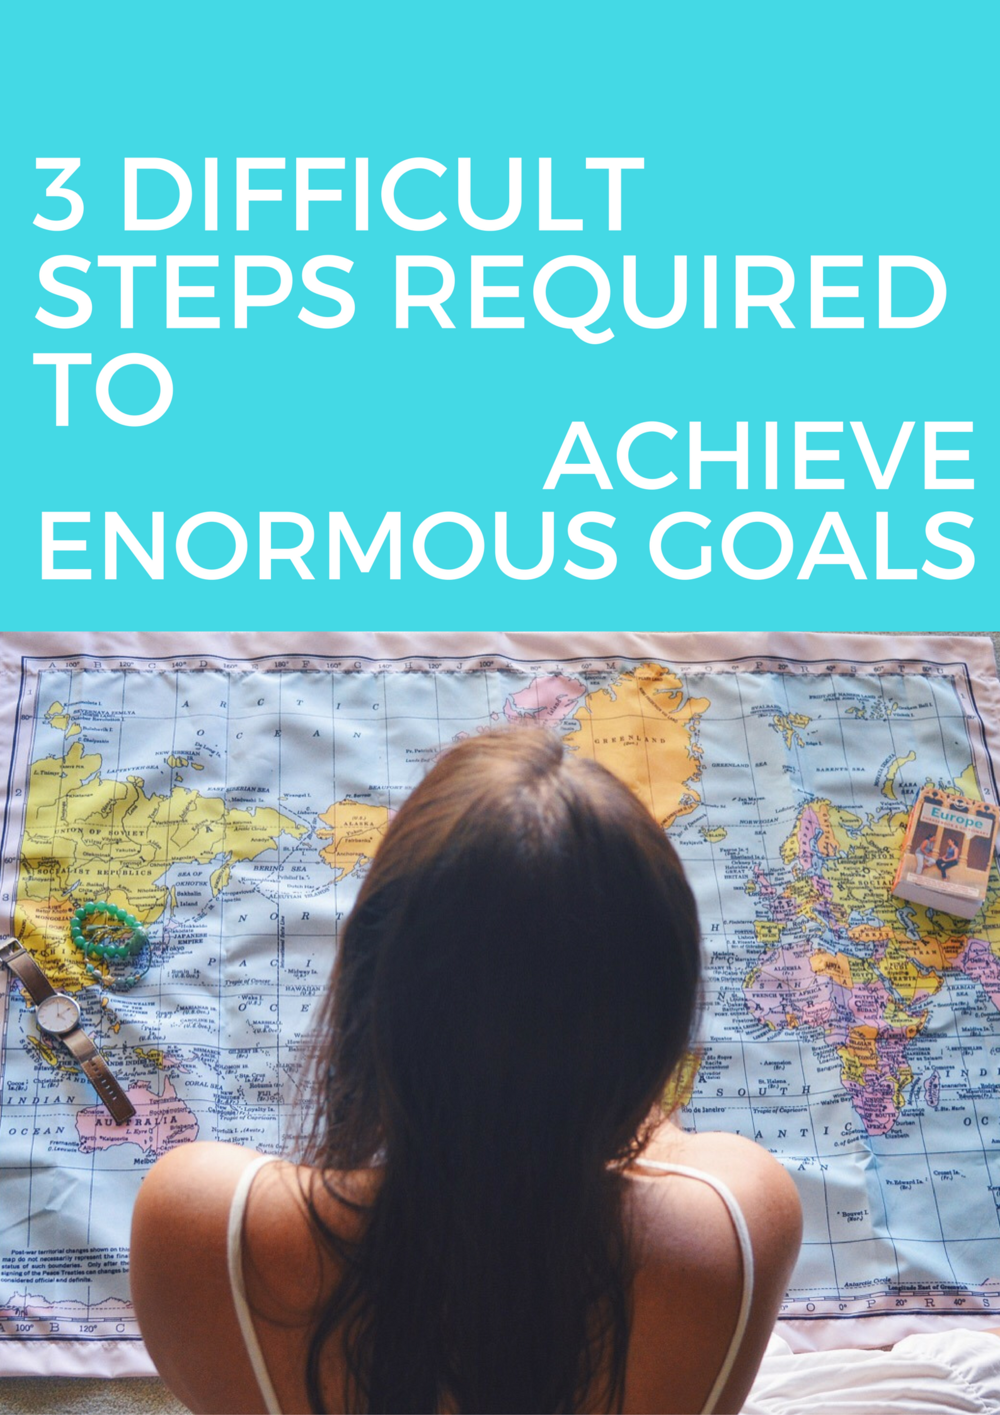 3 Difficult Steps Required to Achieve Enormous Goals